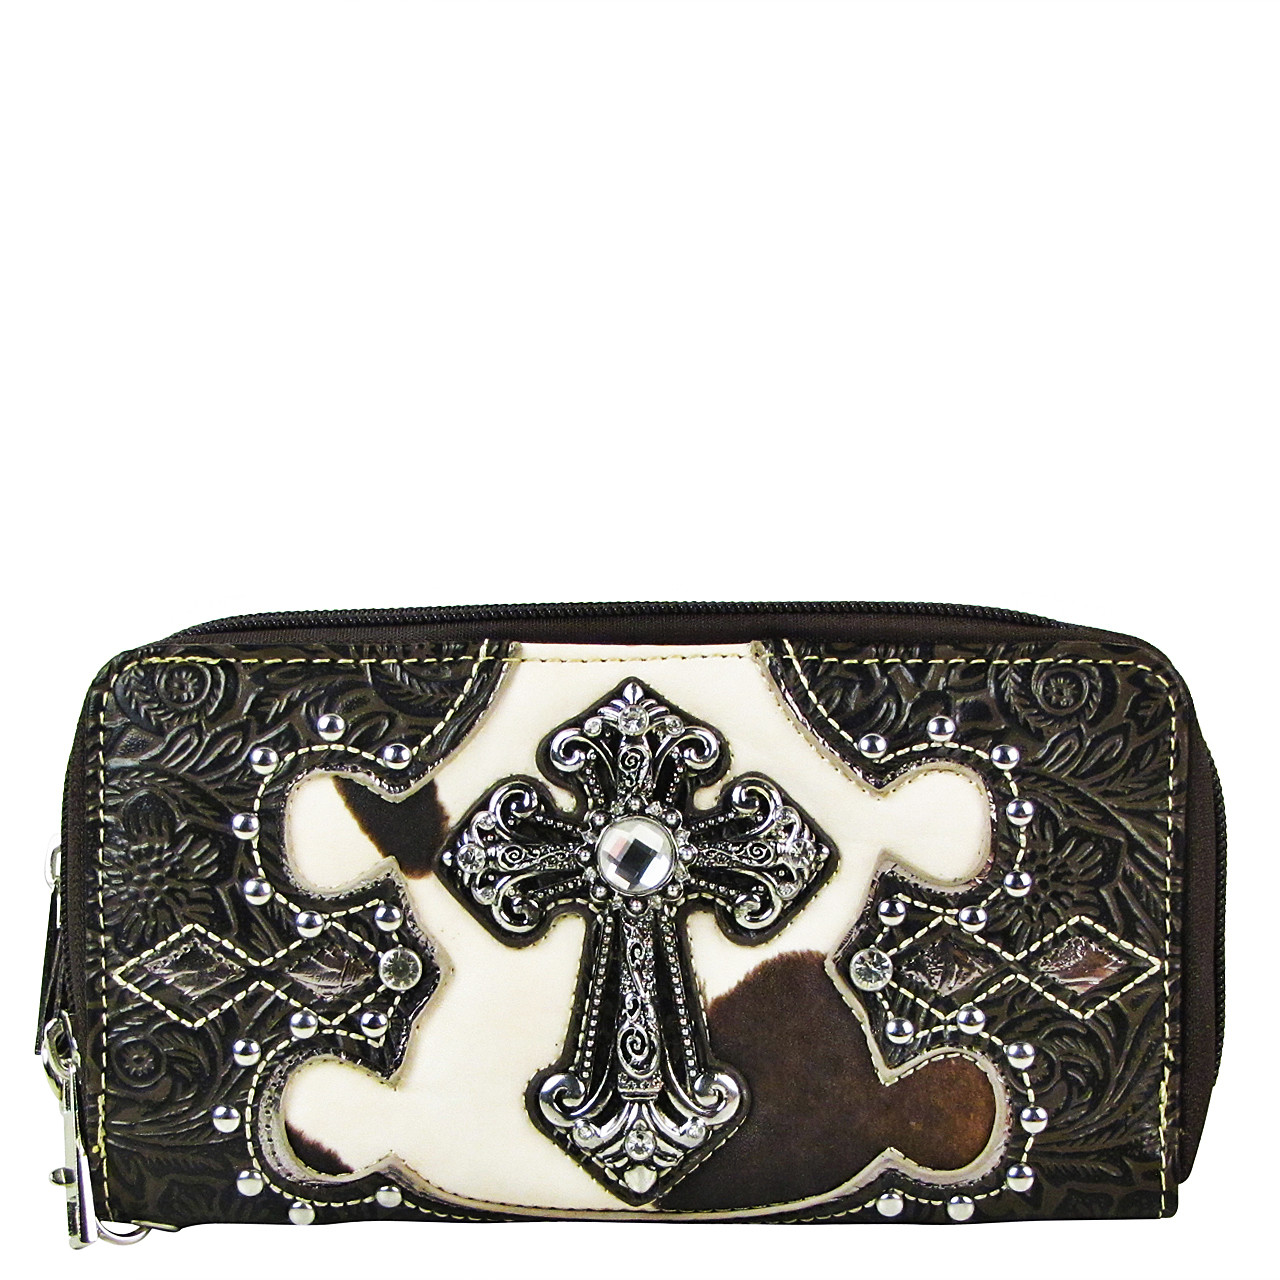 BROWN COW RHINESTONE CROSS LOOK ZIPPER WALLET CB3-0406BRN